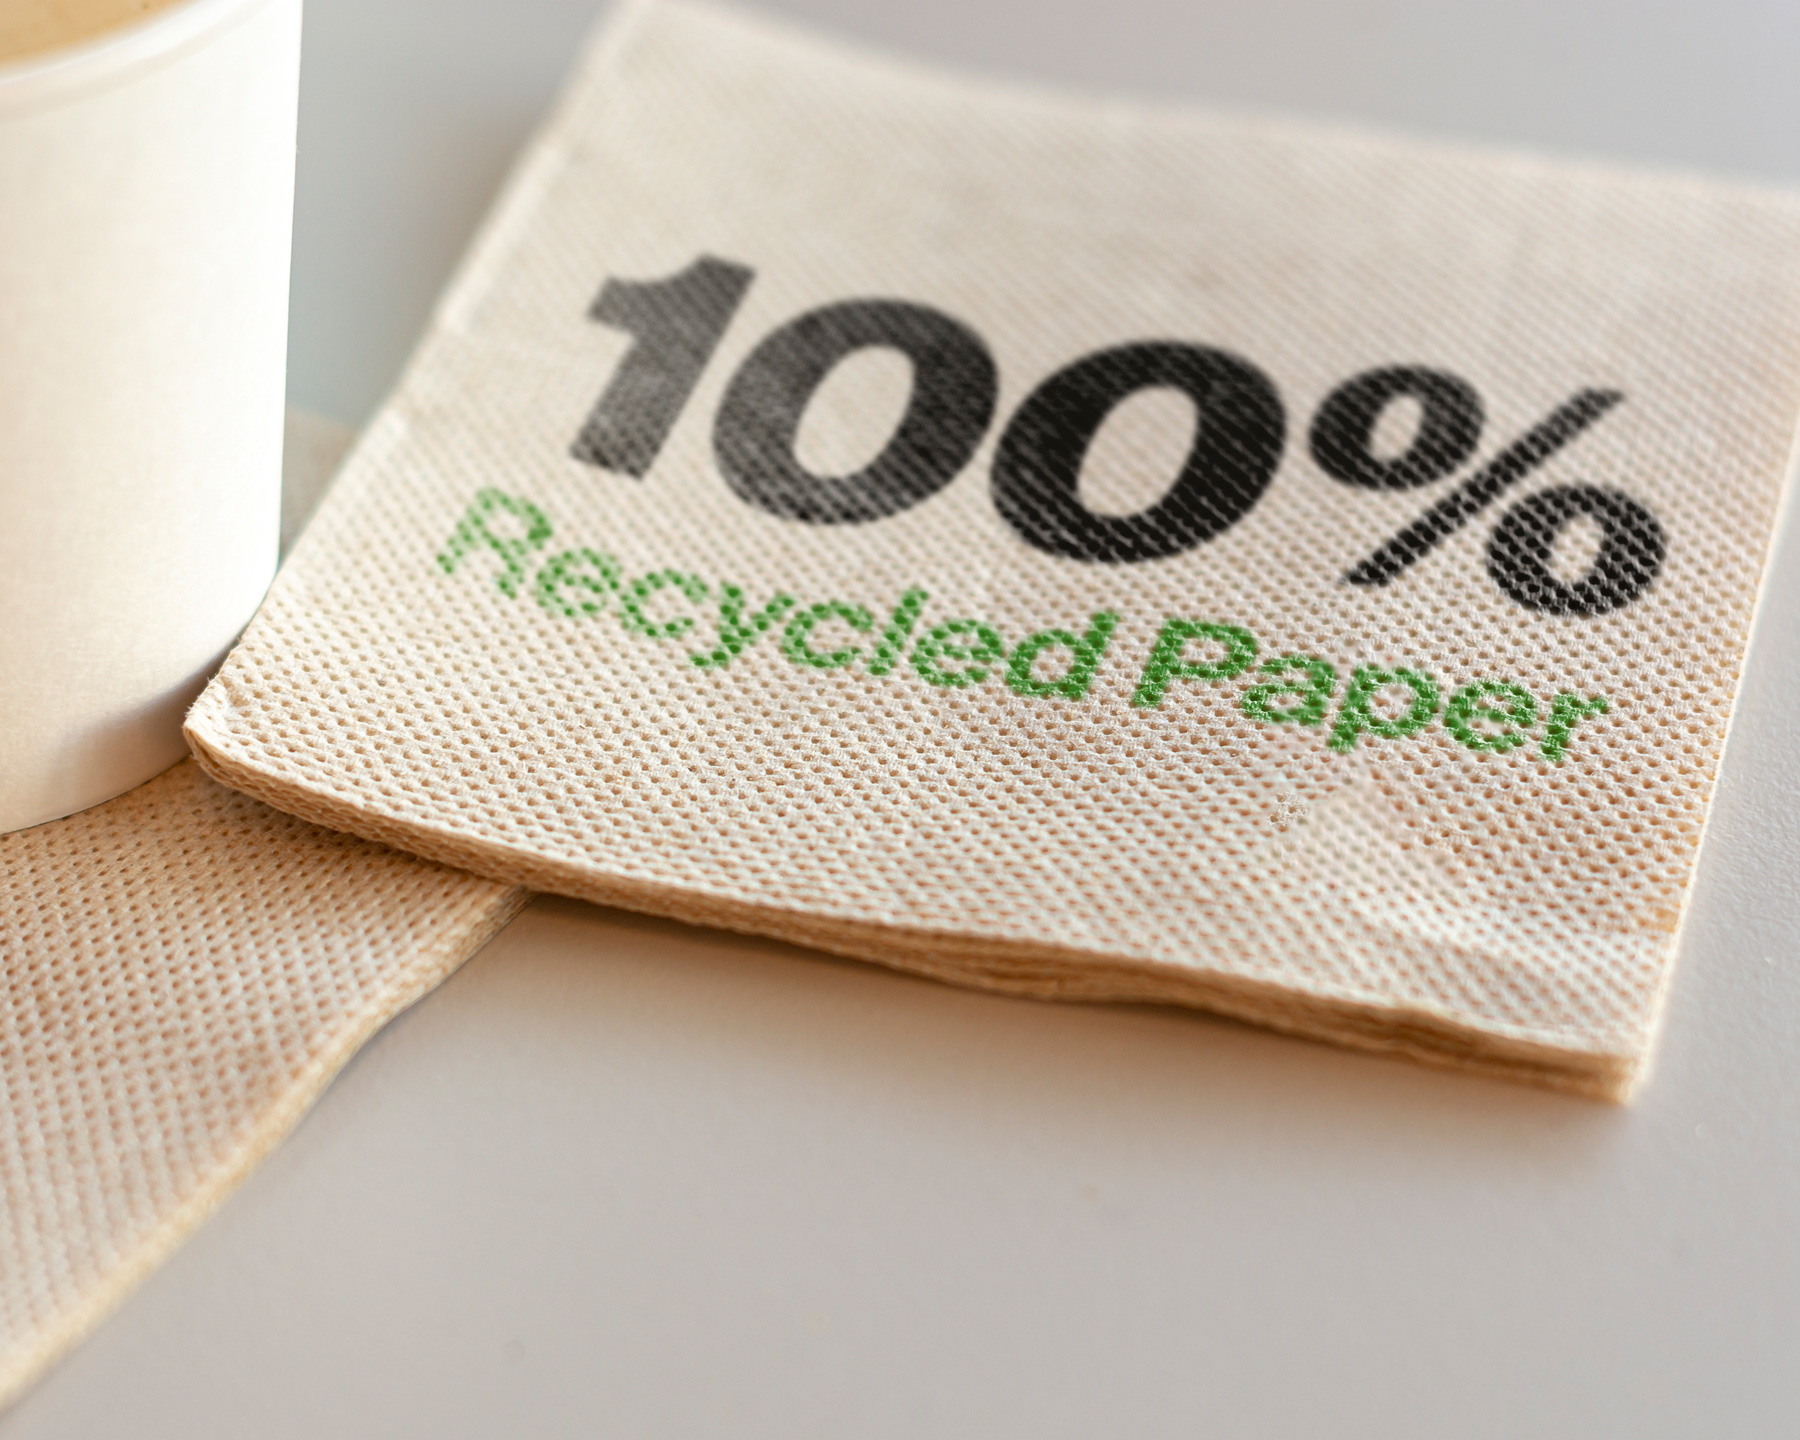 How to Save Water at Home: buy recycled paper products